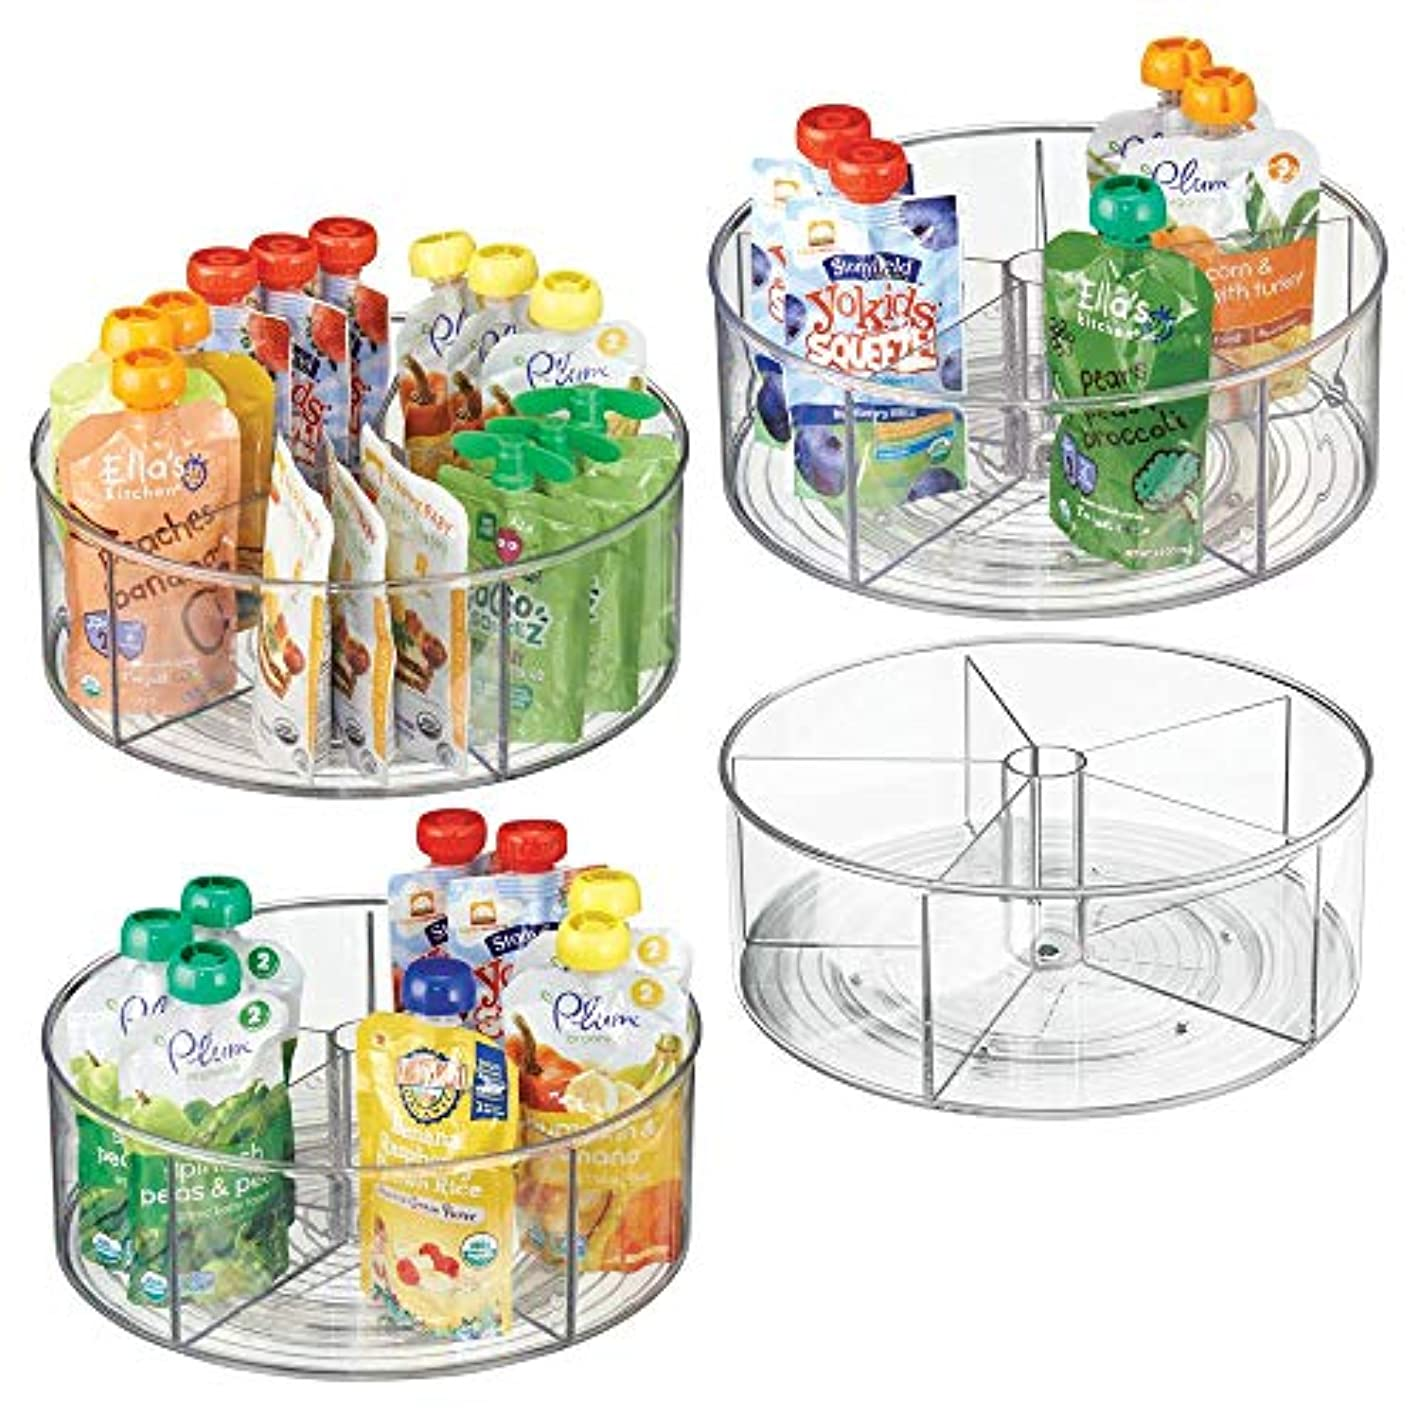 mDesign Divided Lazy Susan Turntable Storage Container for Kitchen Cabinet, Pantry, Refrigerator, Countertop - BPA Free, Food Safe - Spinning Organizer for Kids/Toddlers - 5 Sections, 4 Pack - Clear